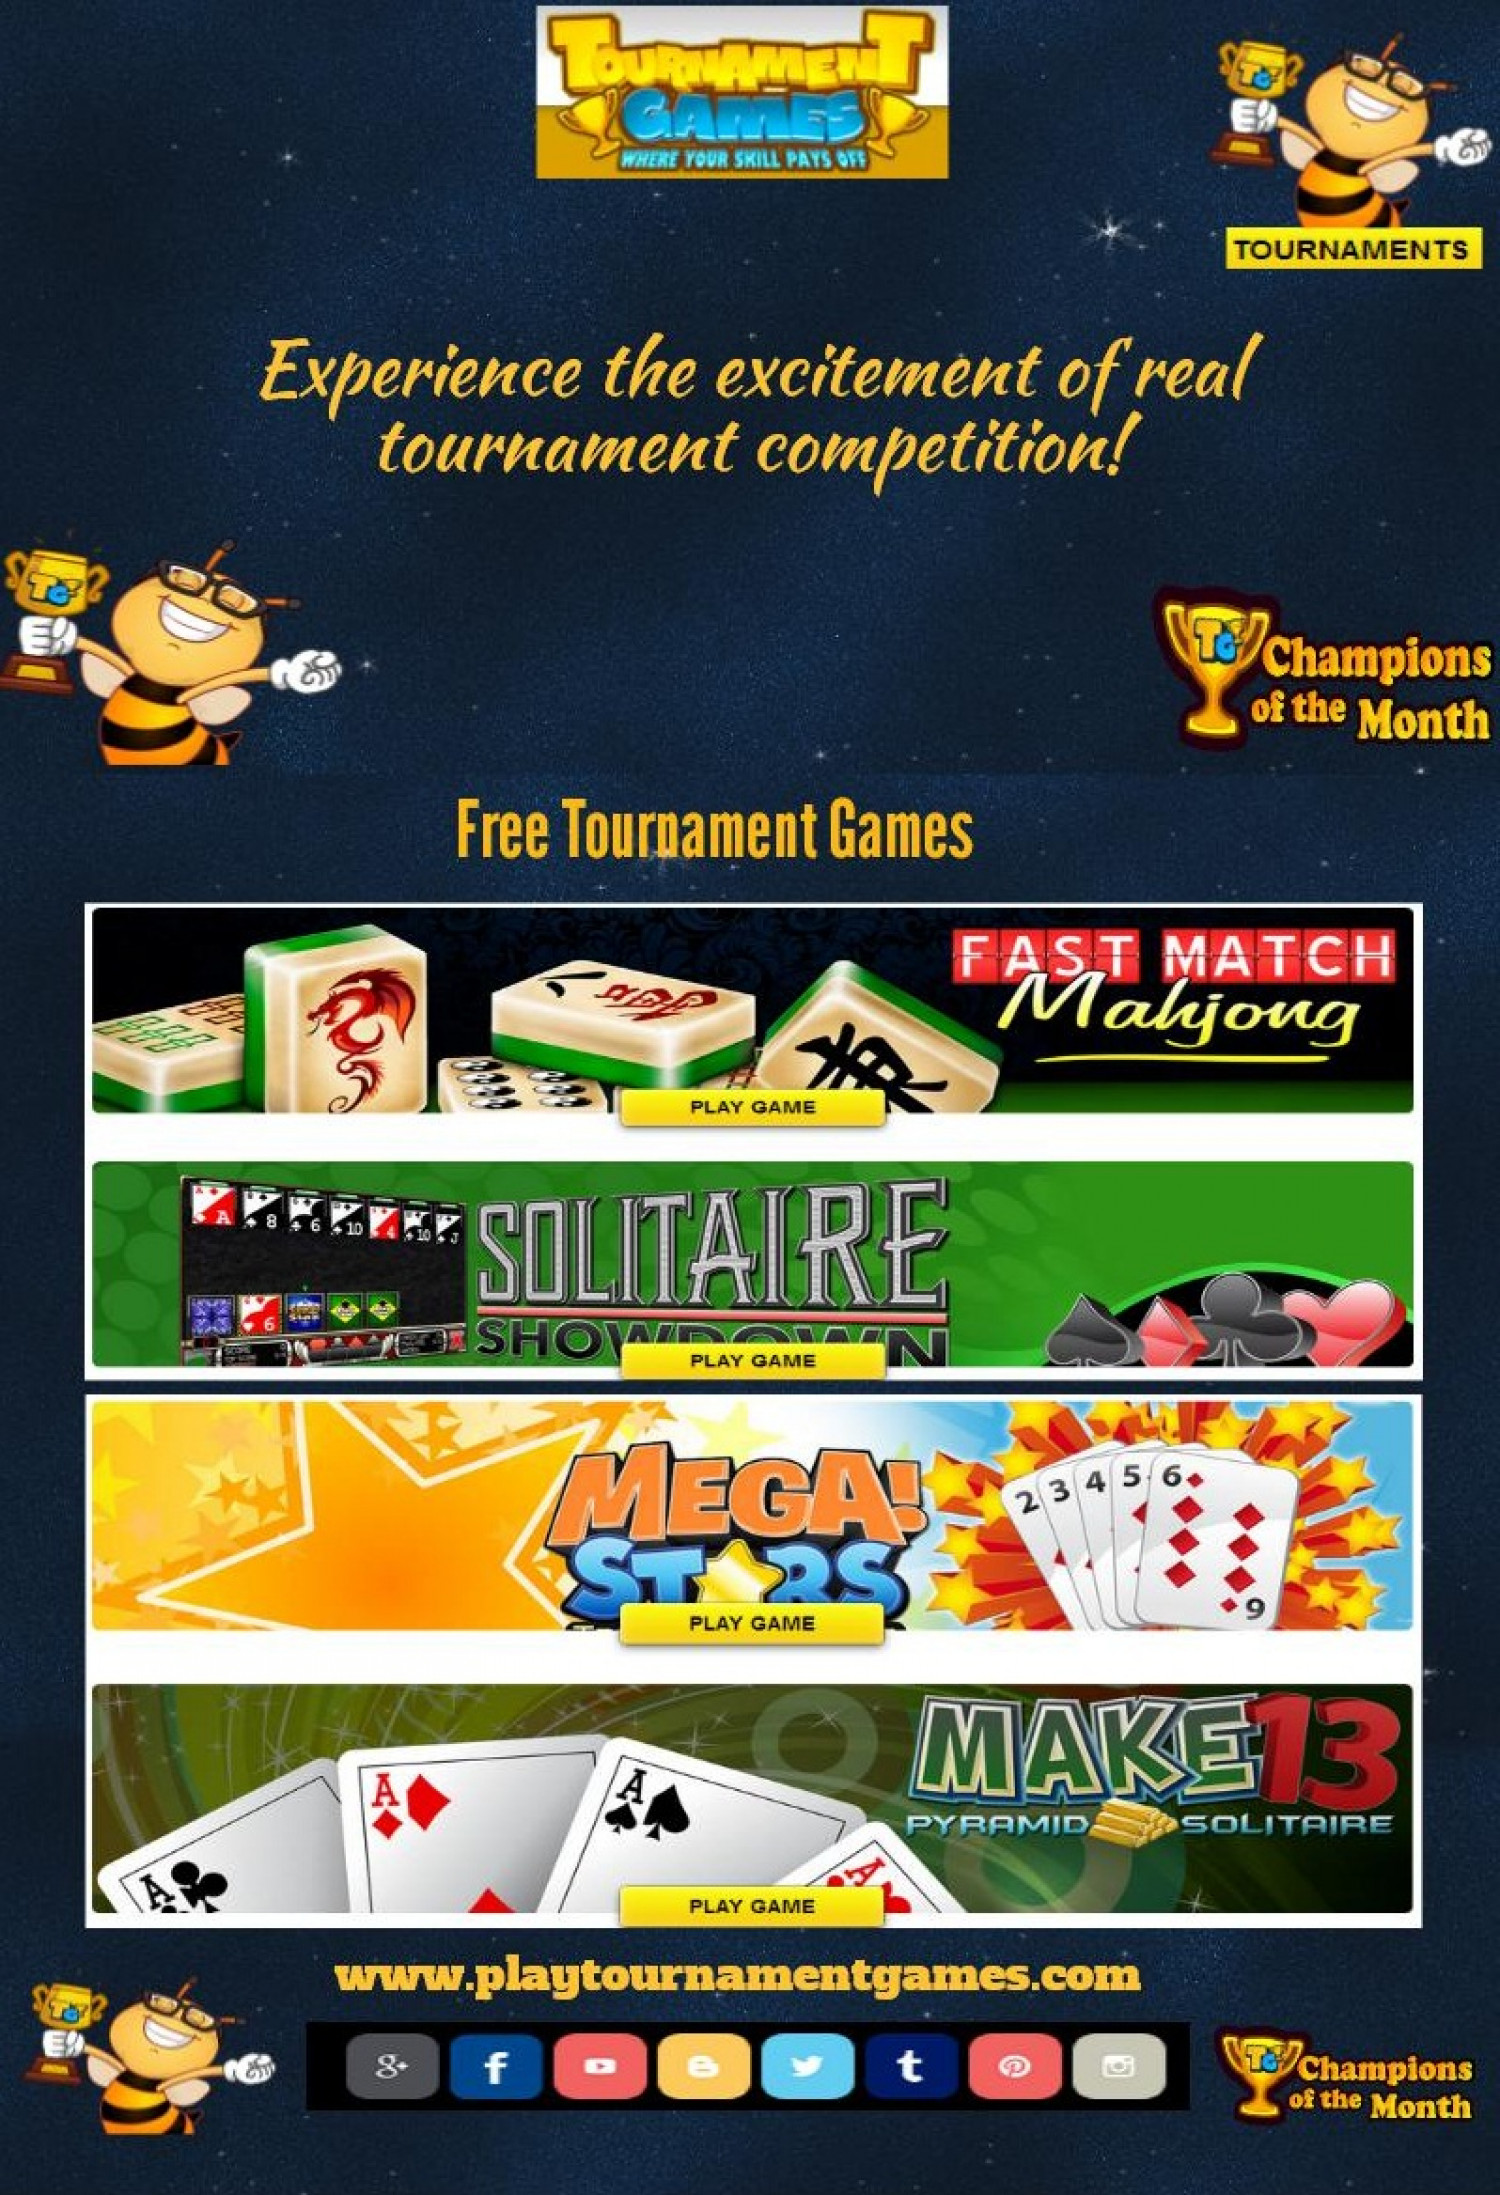 Experience the excitement of real tournament competition! Infographic